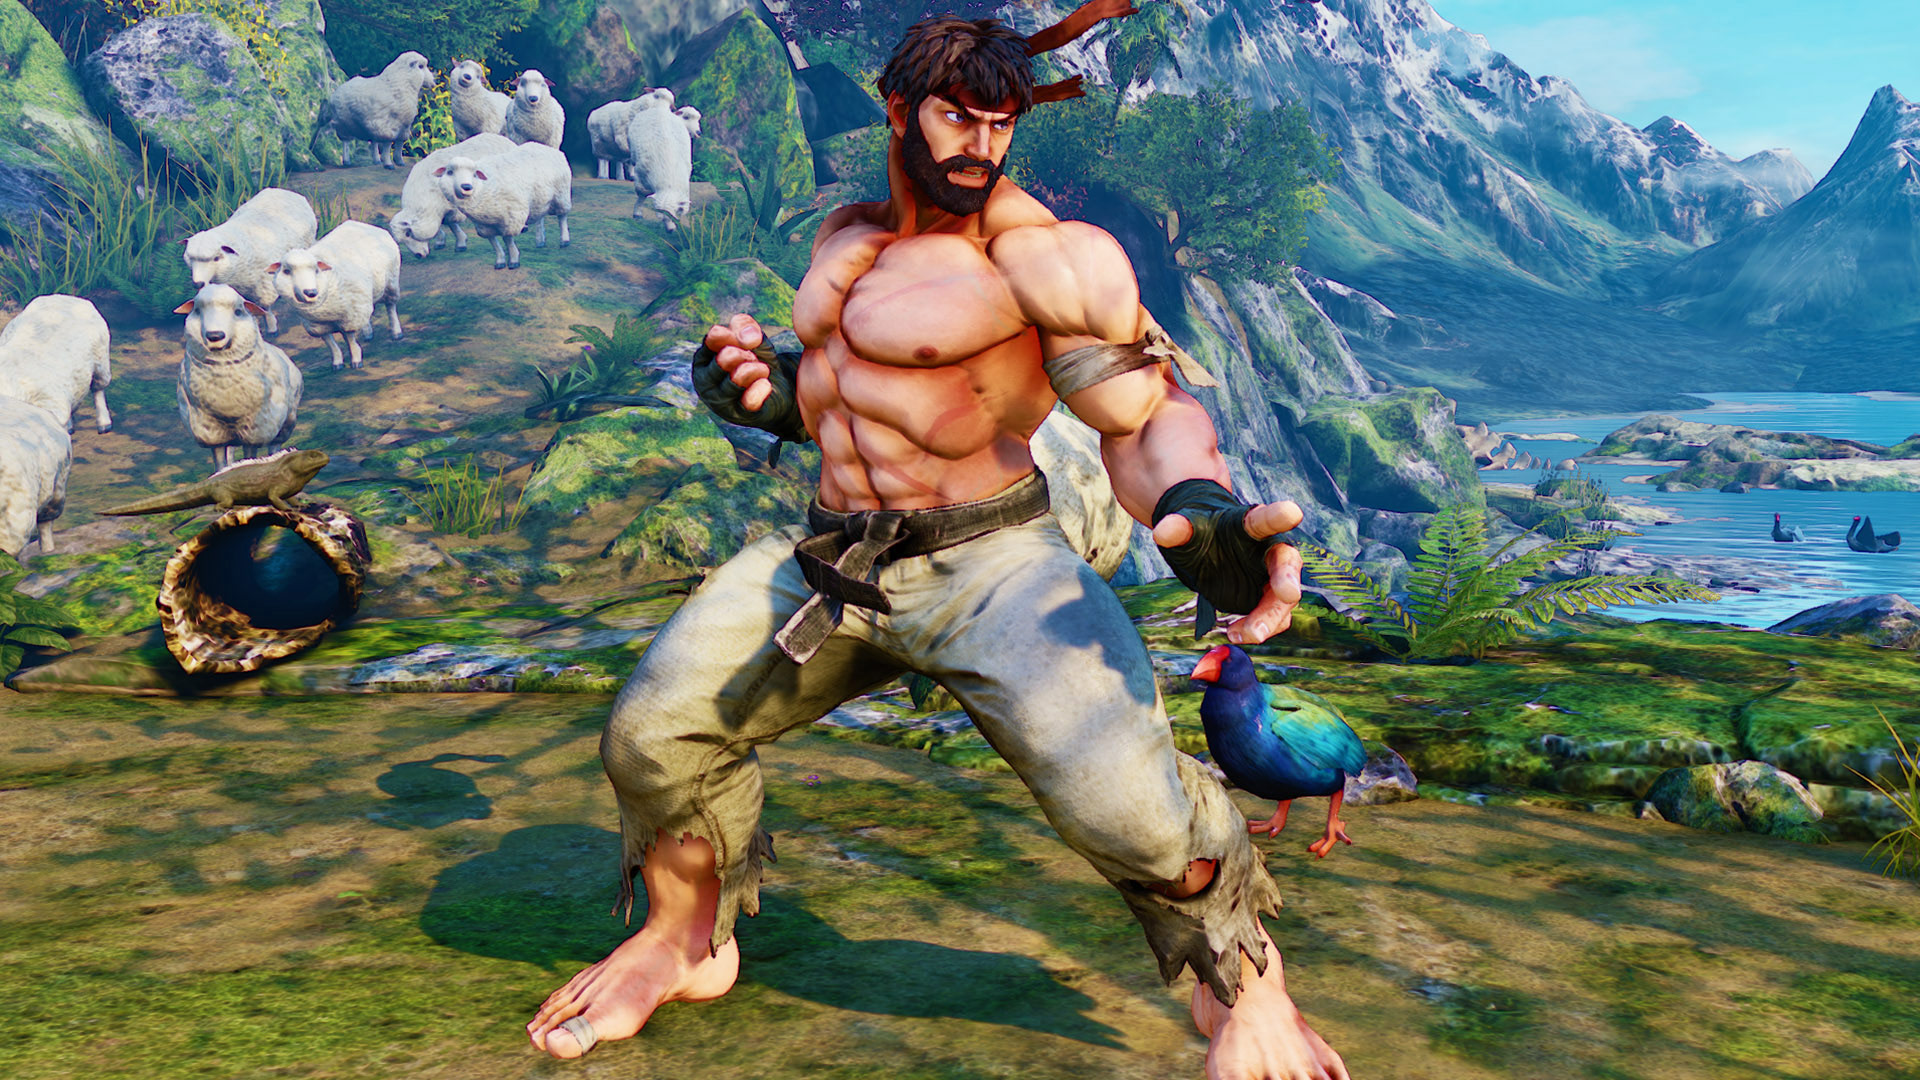 """Street Fighter 5 """"Hot Ryu"""" 2 out of 2 image gallery"""